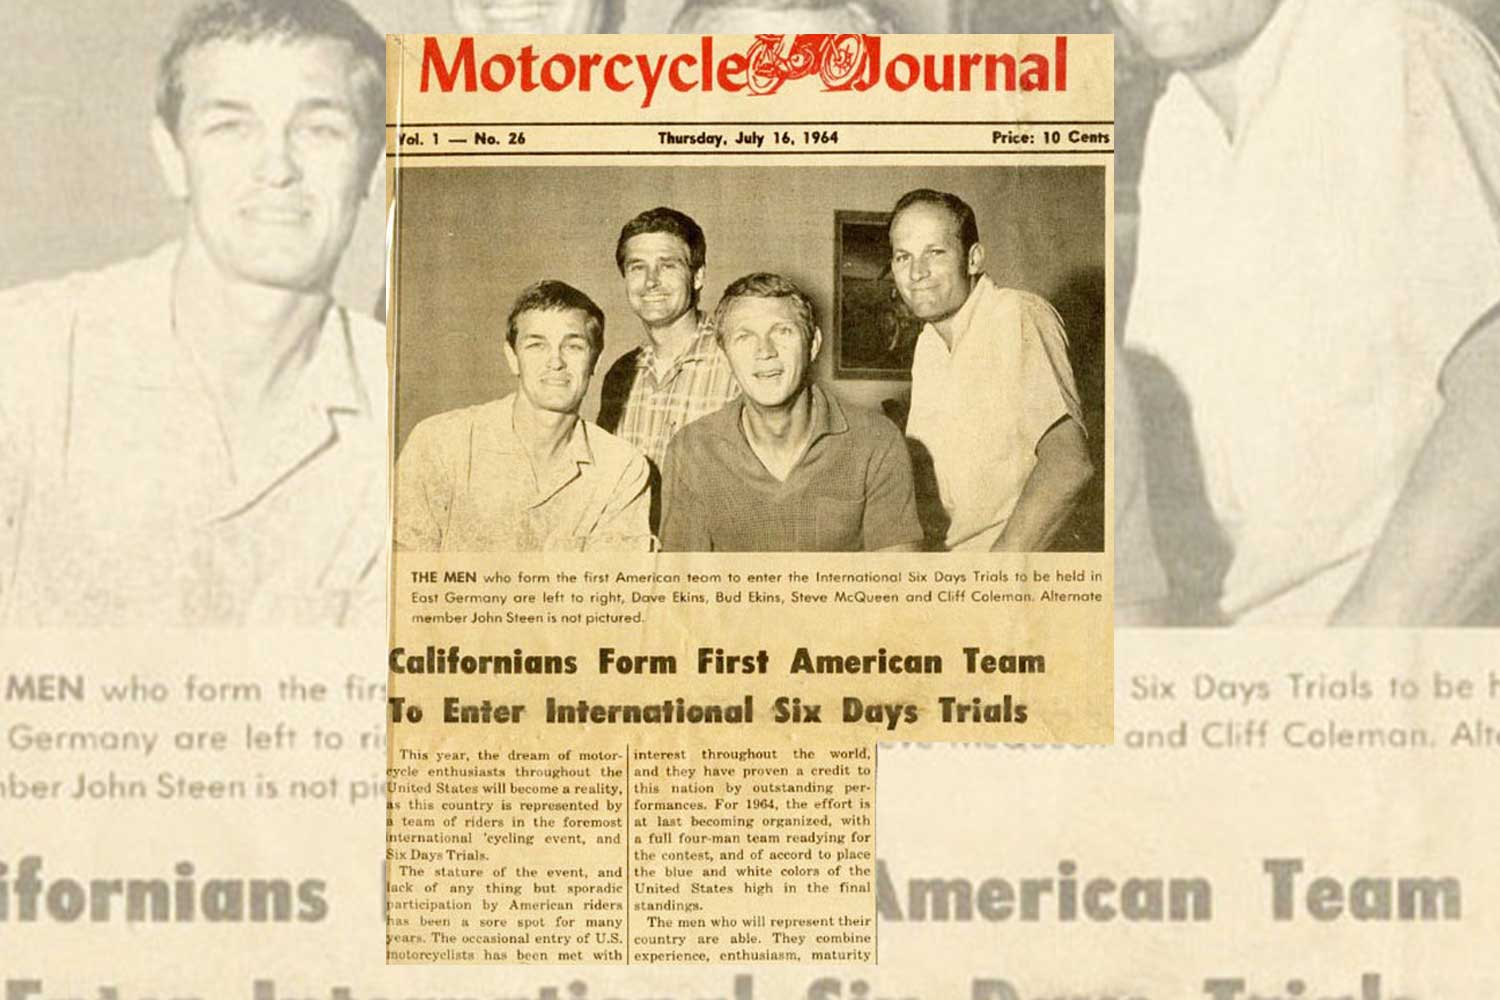 A clip out from the Motorcycle Journal announcing the 1964 ISDT team (Image: speedtracktales.com)